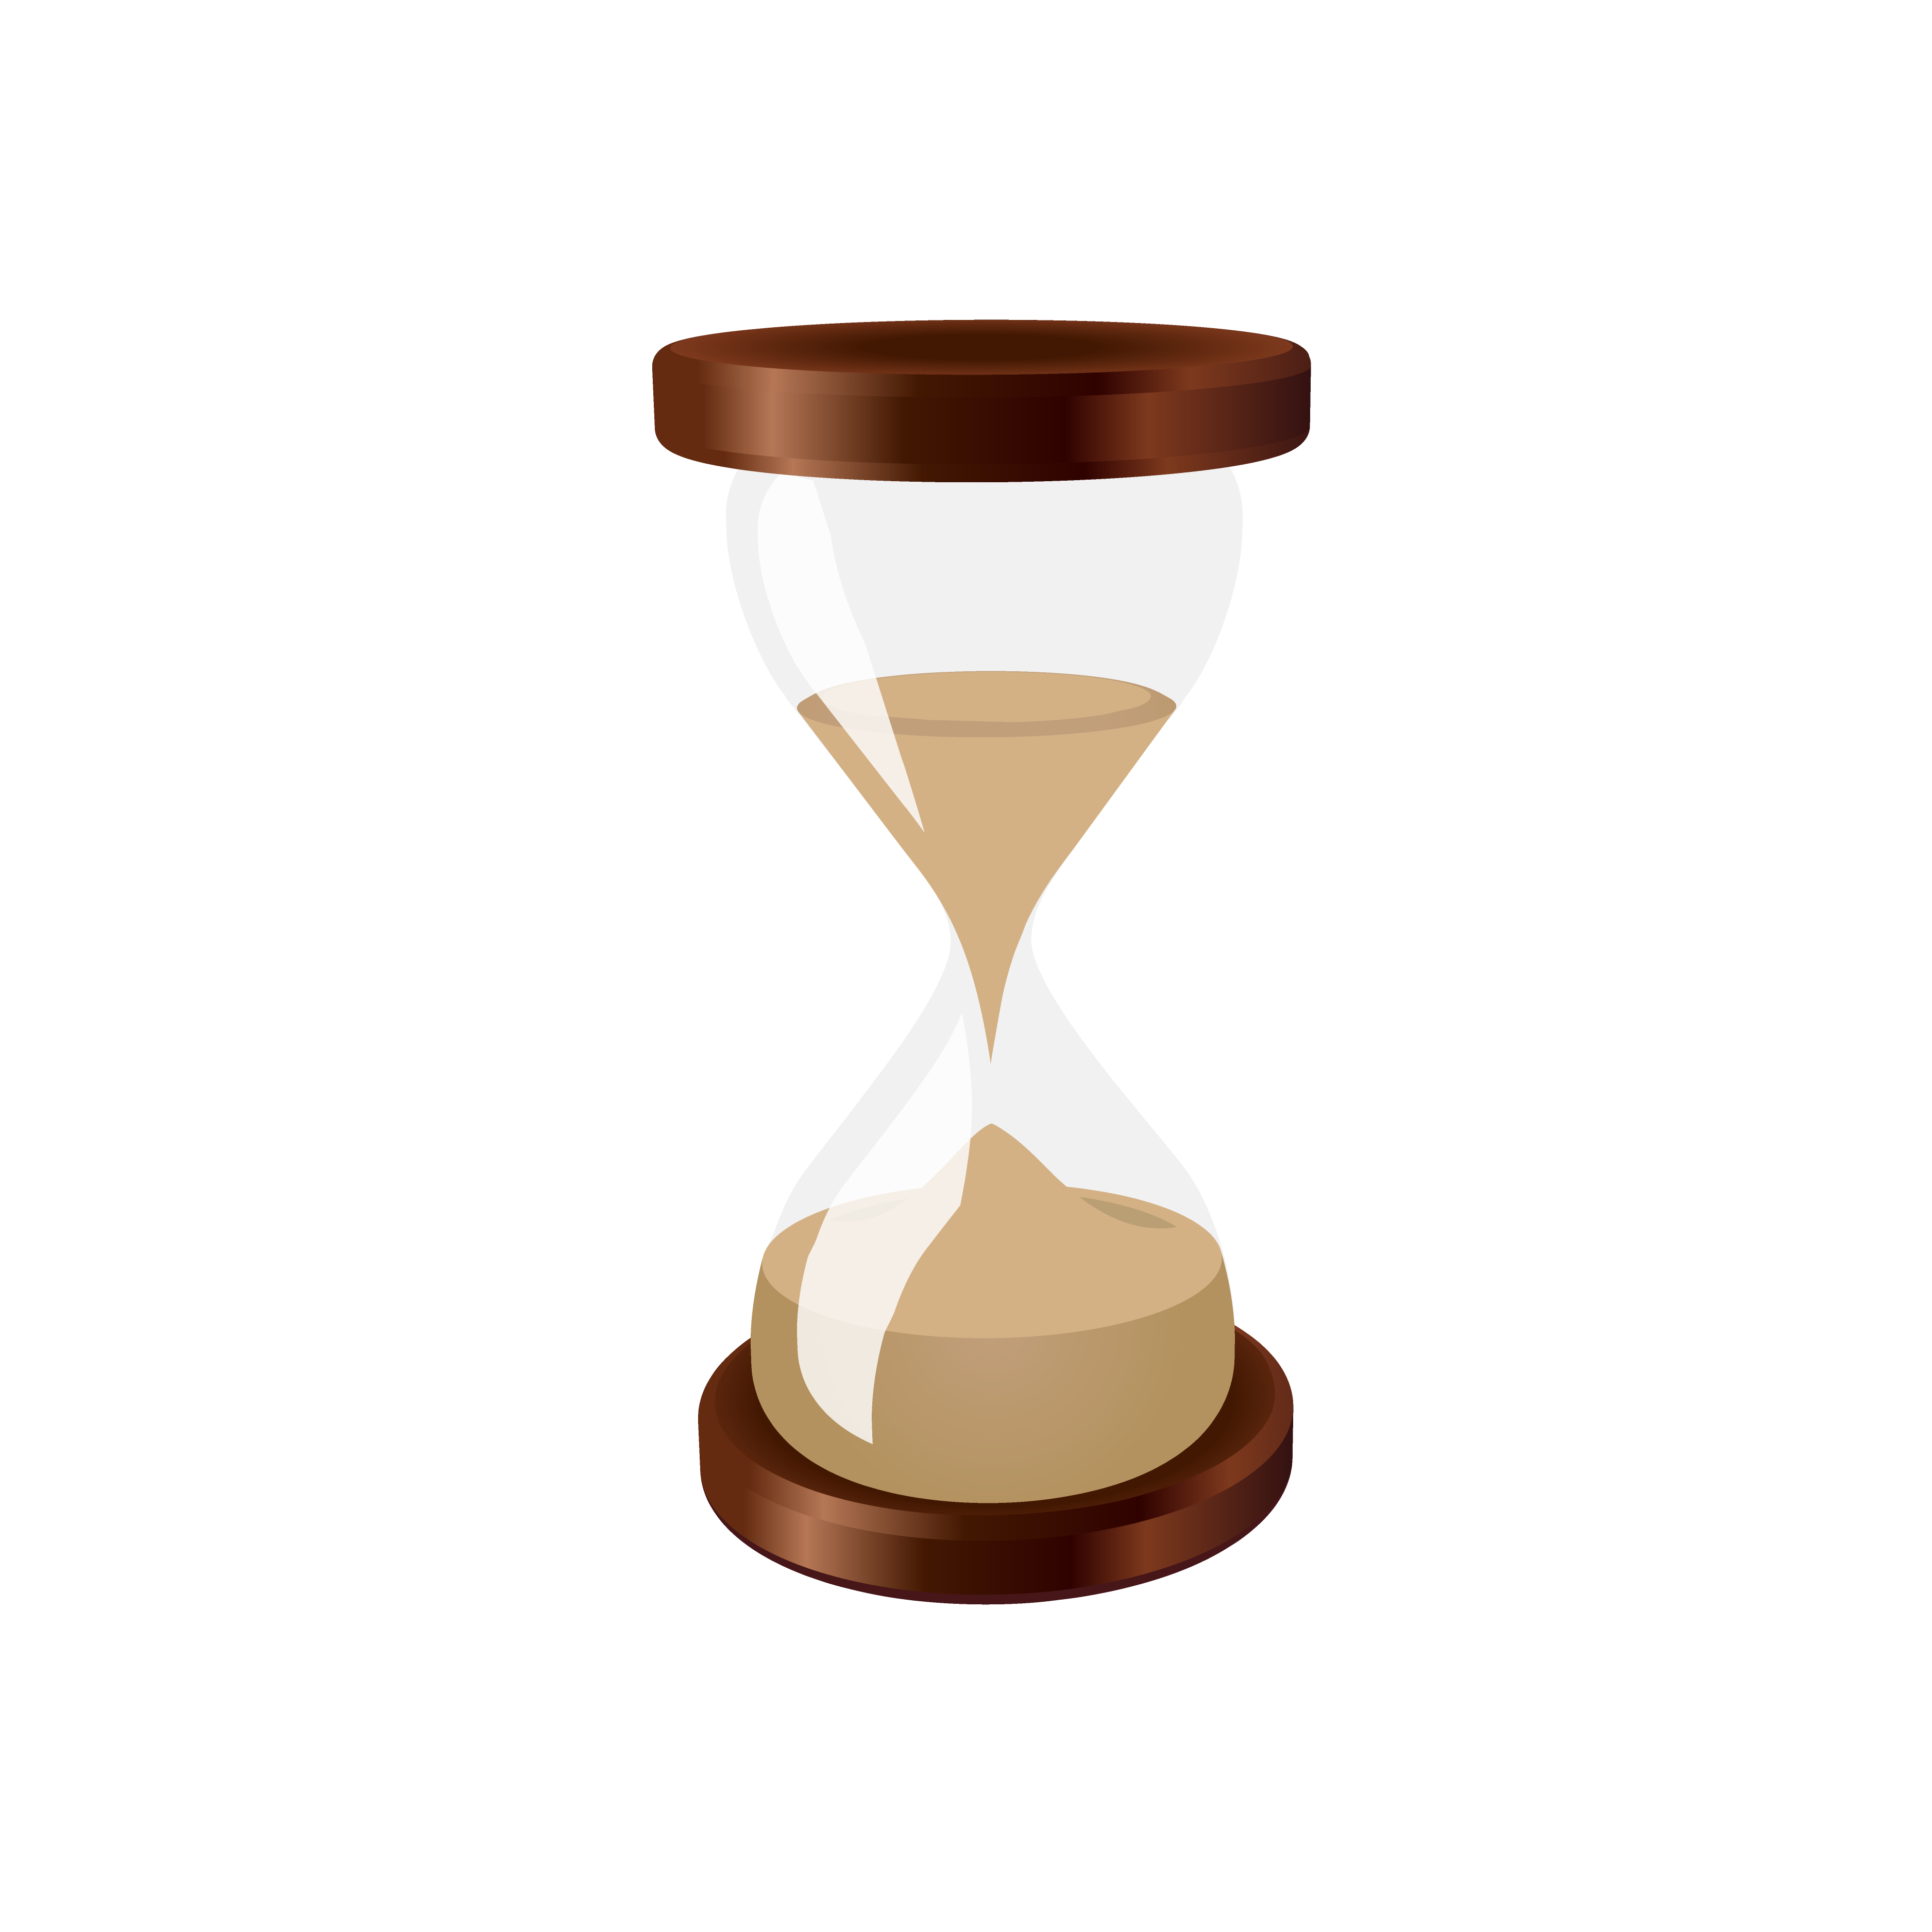 Hourglass clipart vector. Sand clock clip arts